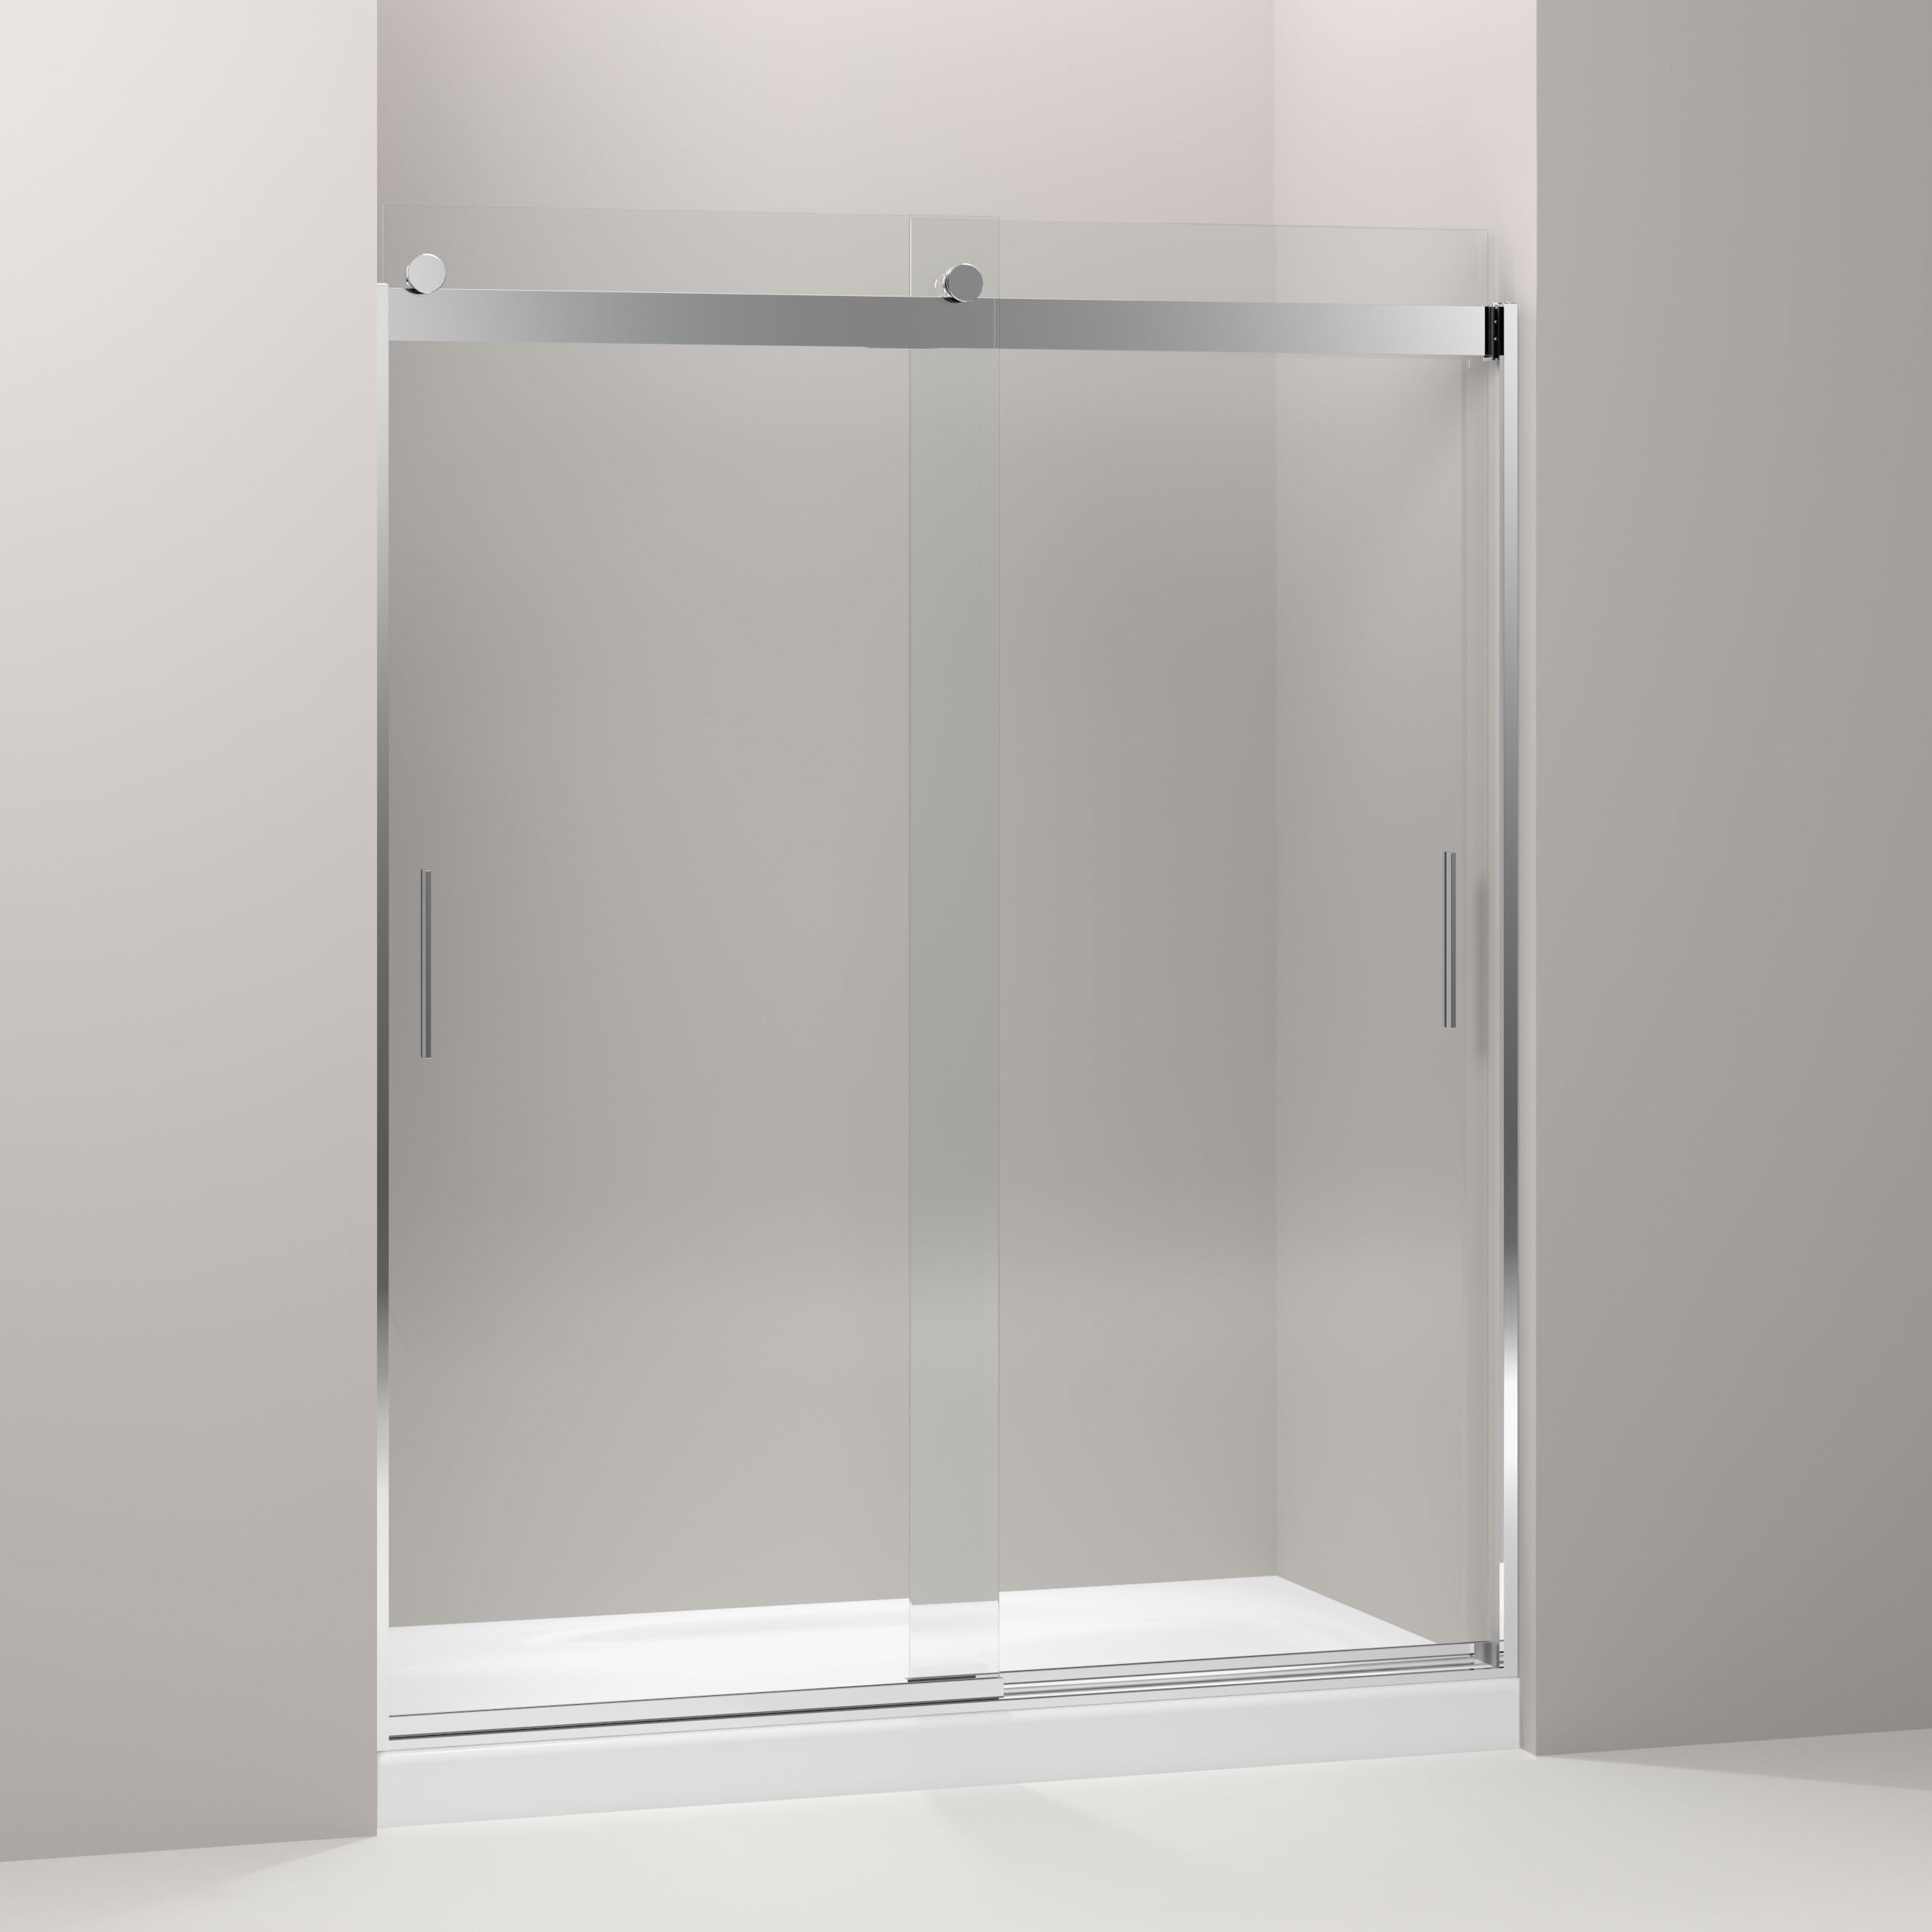 ideas design x door our return hinged amazing side gallery vibrant seal nobby trim remarkable frameless shower glass of